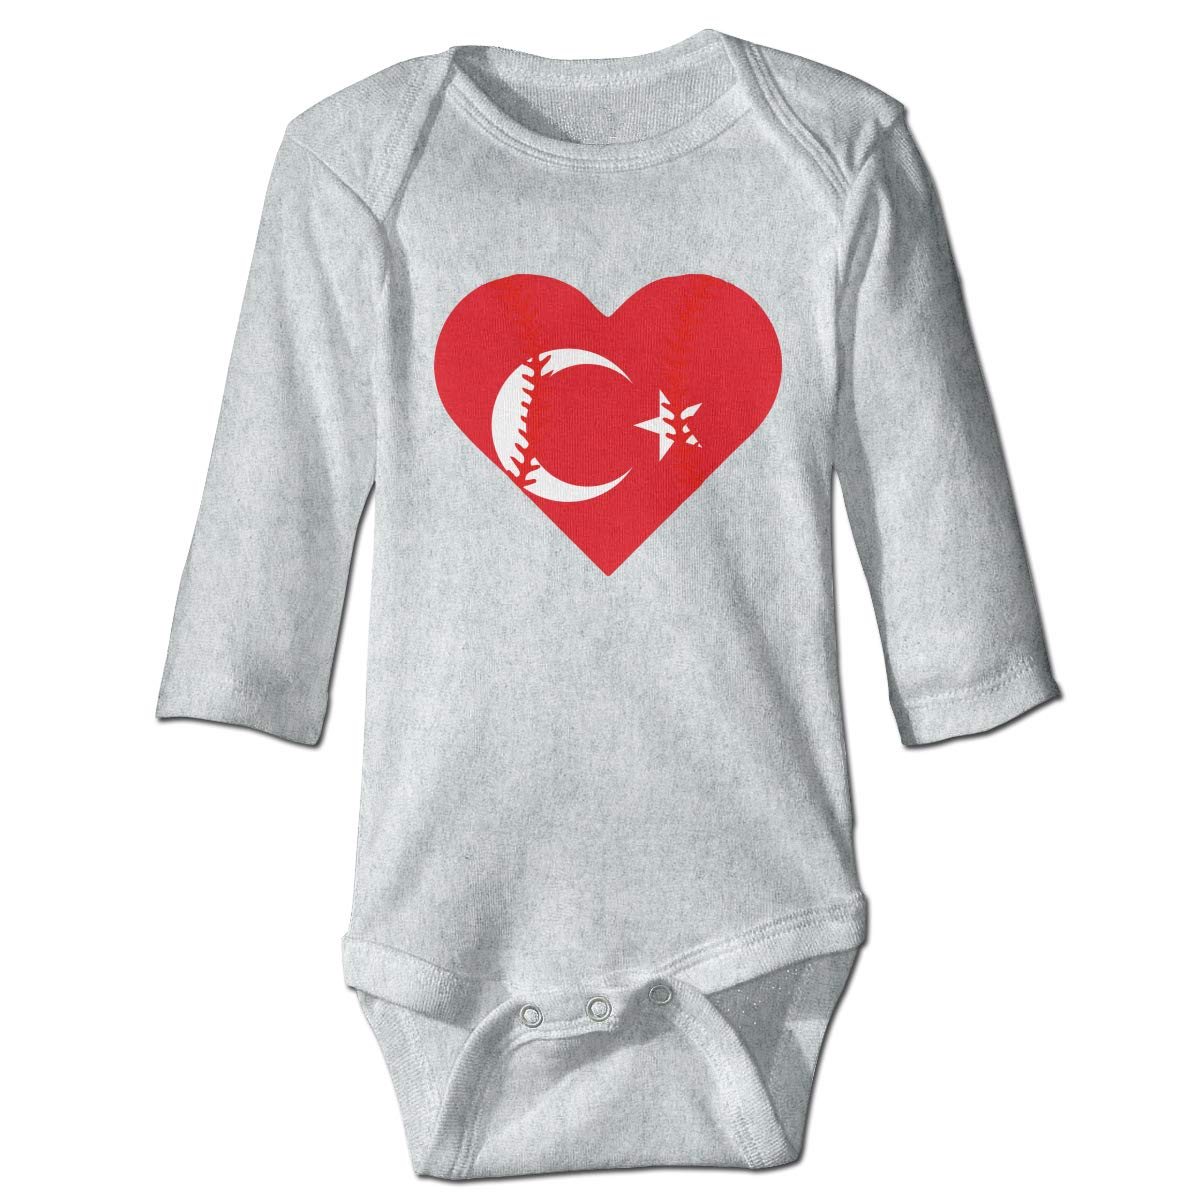 A14UBP Infant Babys Long Sleeve Romper Bodysuit Turkey Flag Baseball Heart Unisex Button Playsuit Outfit Clothes